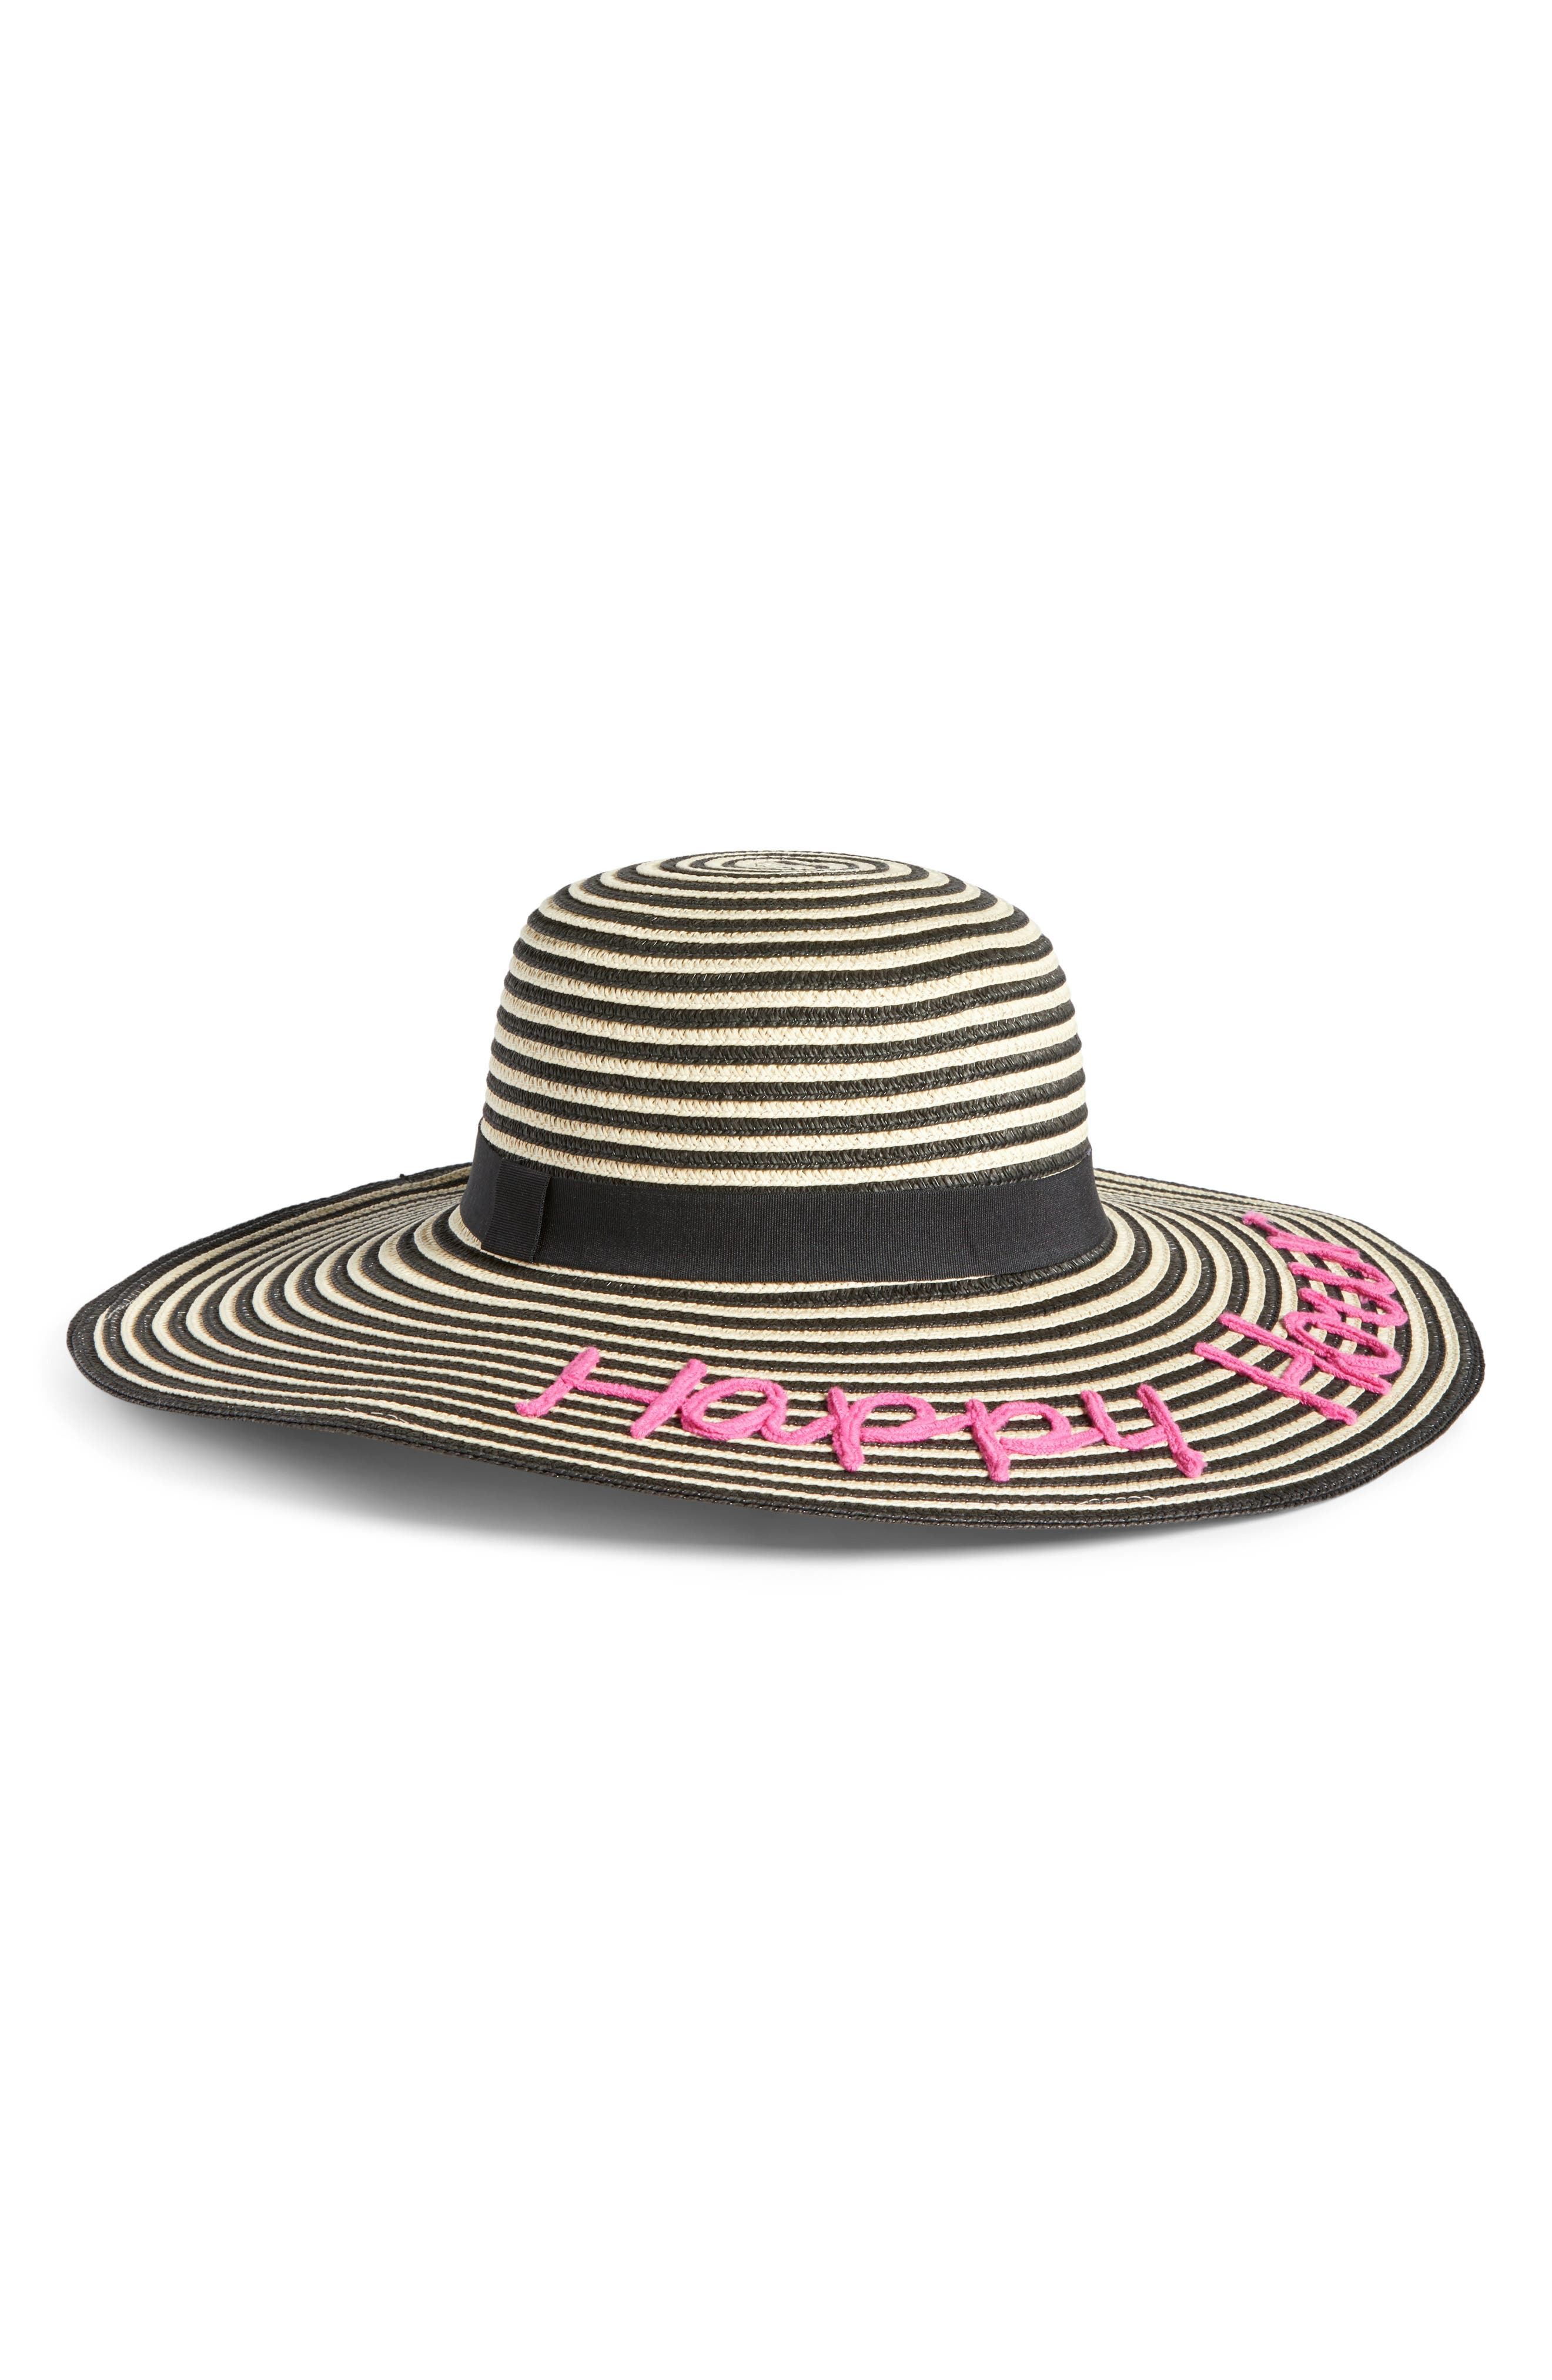 Crossword Straw Hat,                             Main thumbnail 1, color,                             010